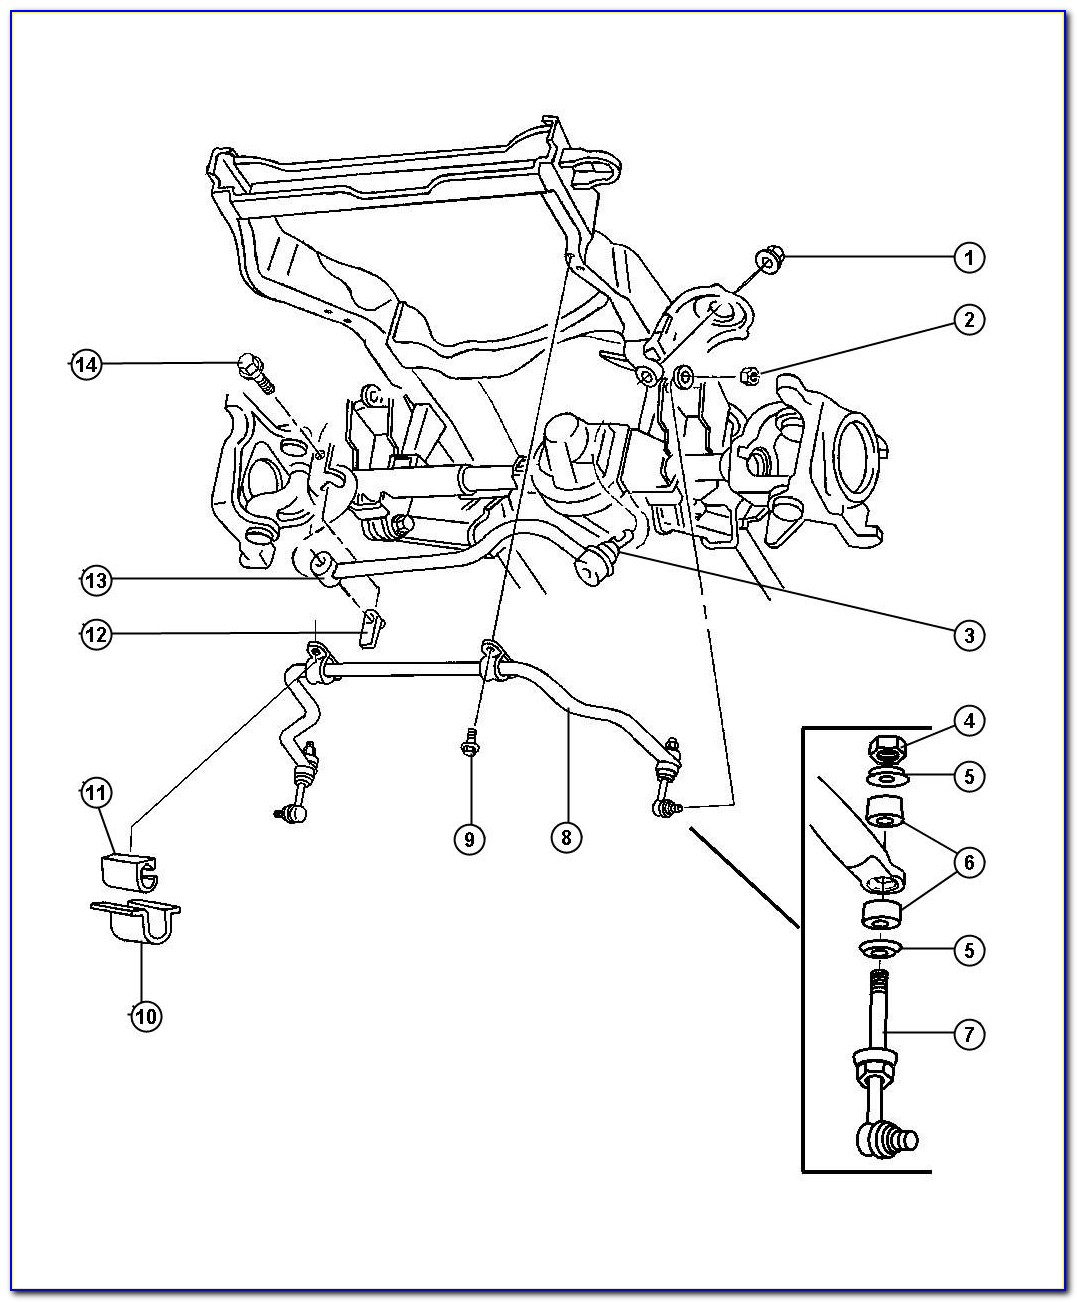 2005 Dodge Ram Front Suspension Diagram